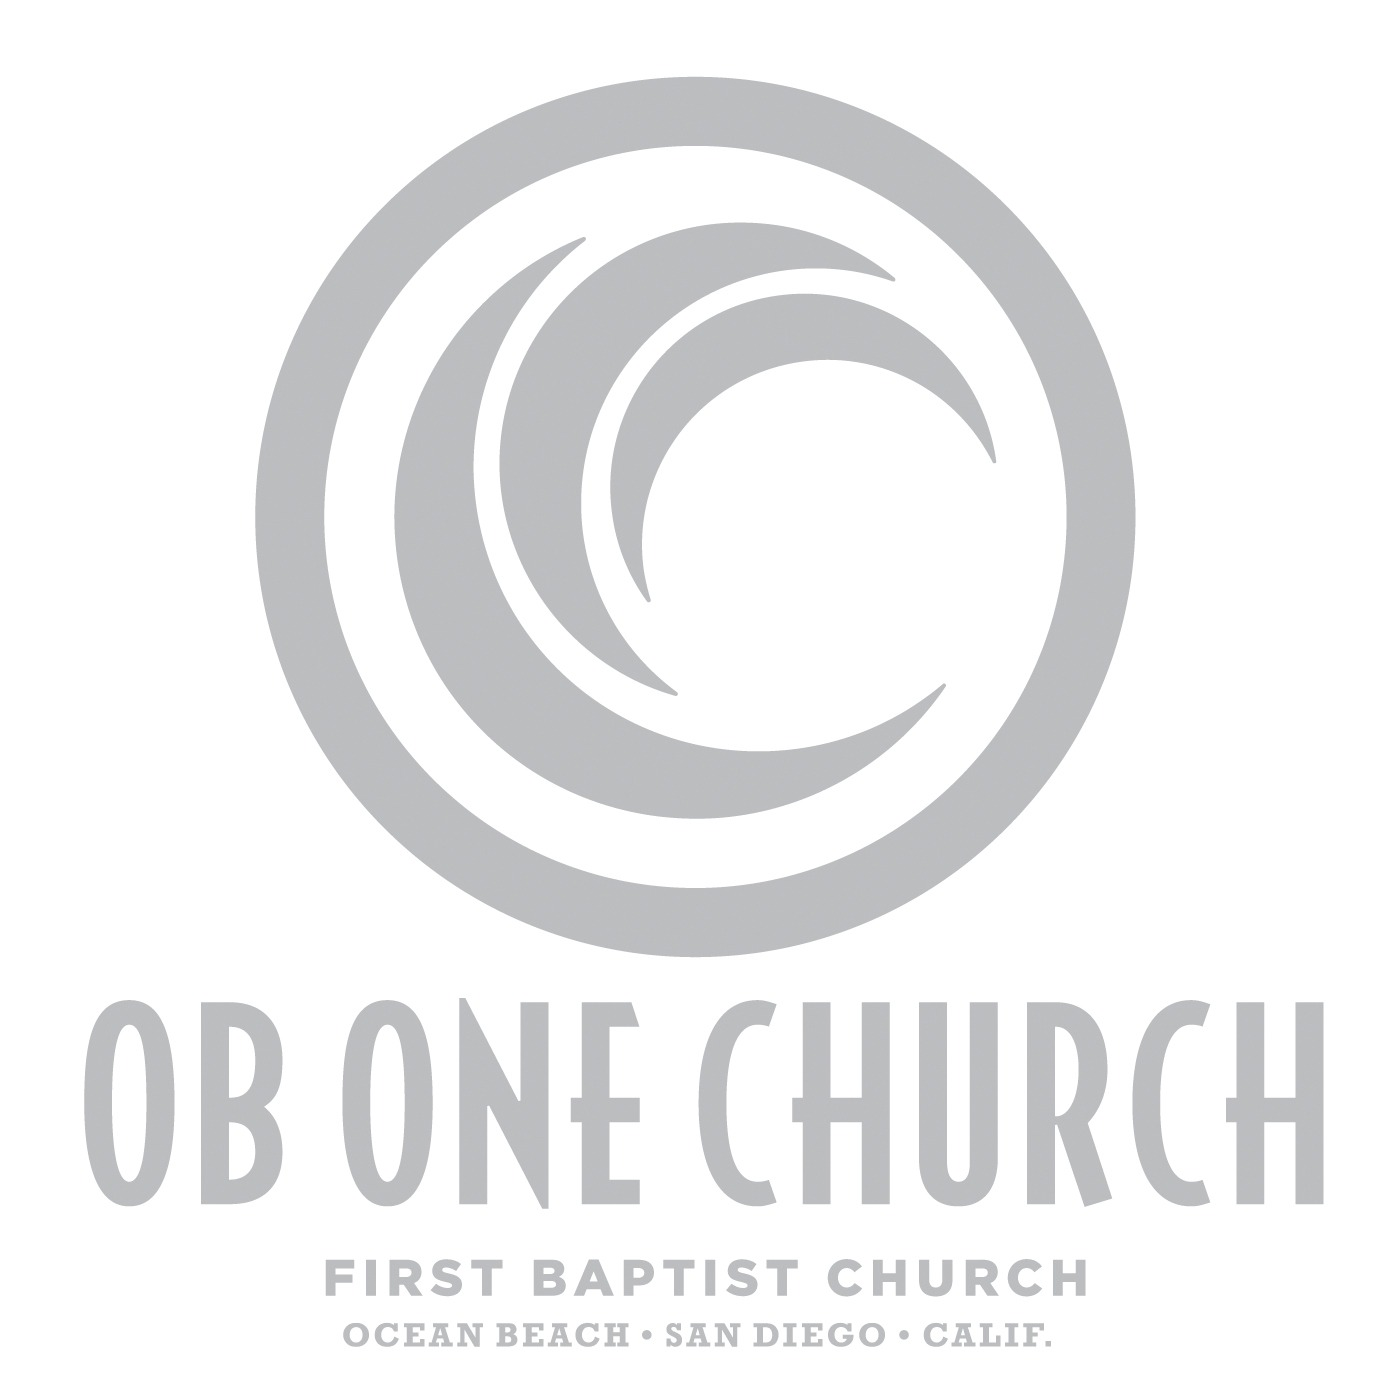 OB One Church